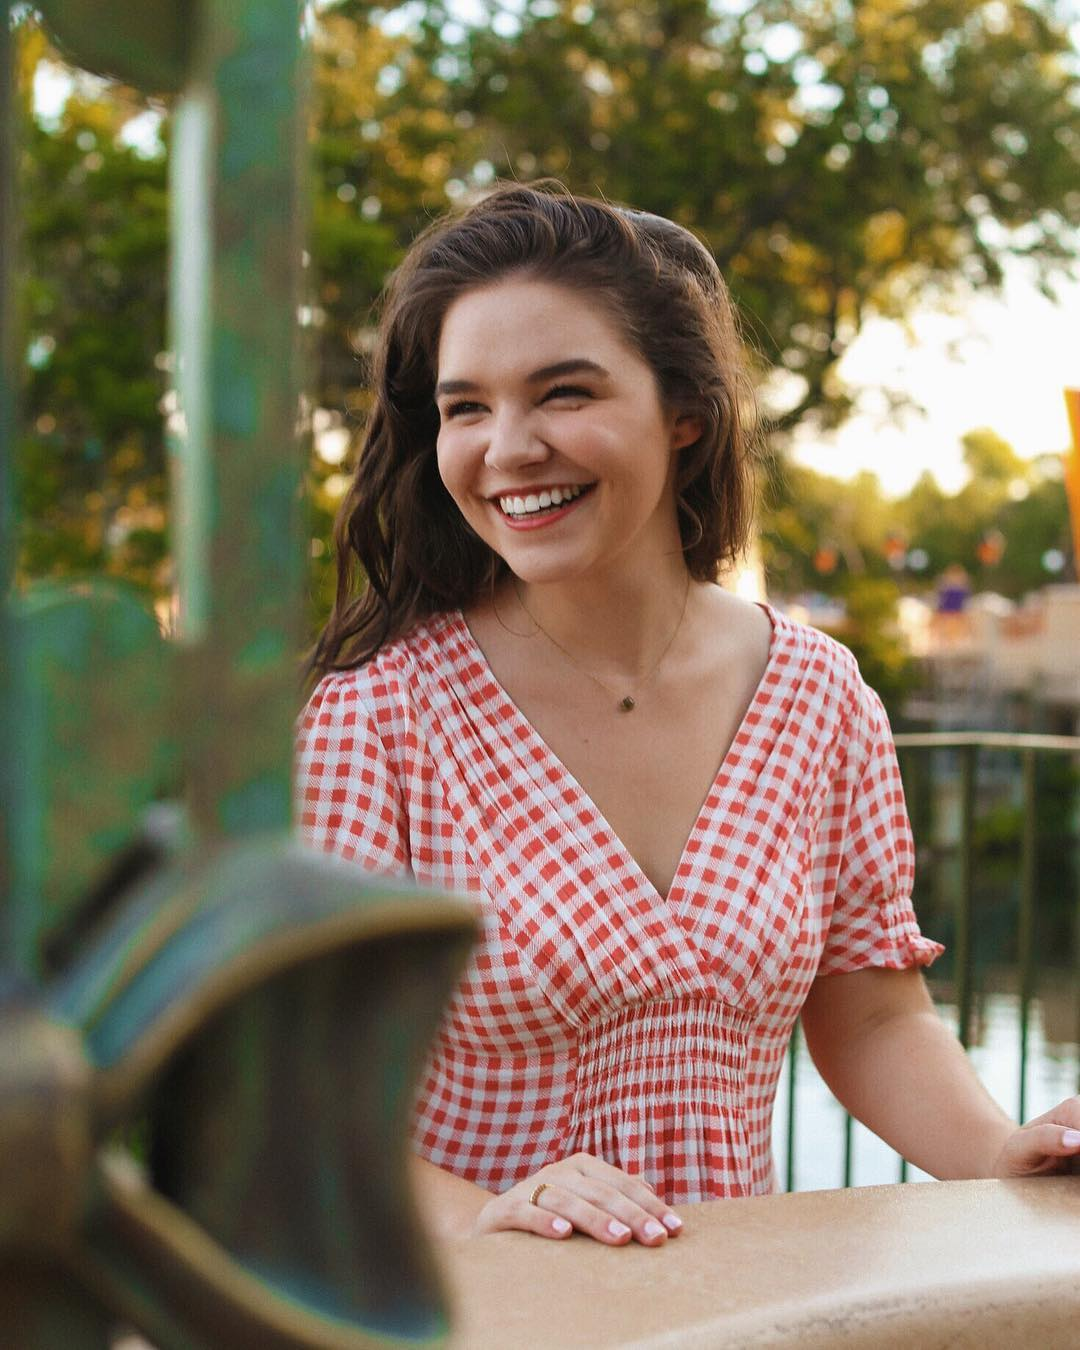 Madison McLaughlin Bio, Height, Age, Weight, Boyfriend and